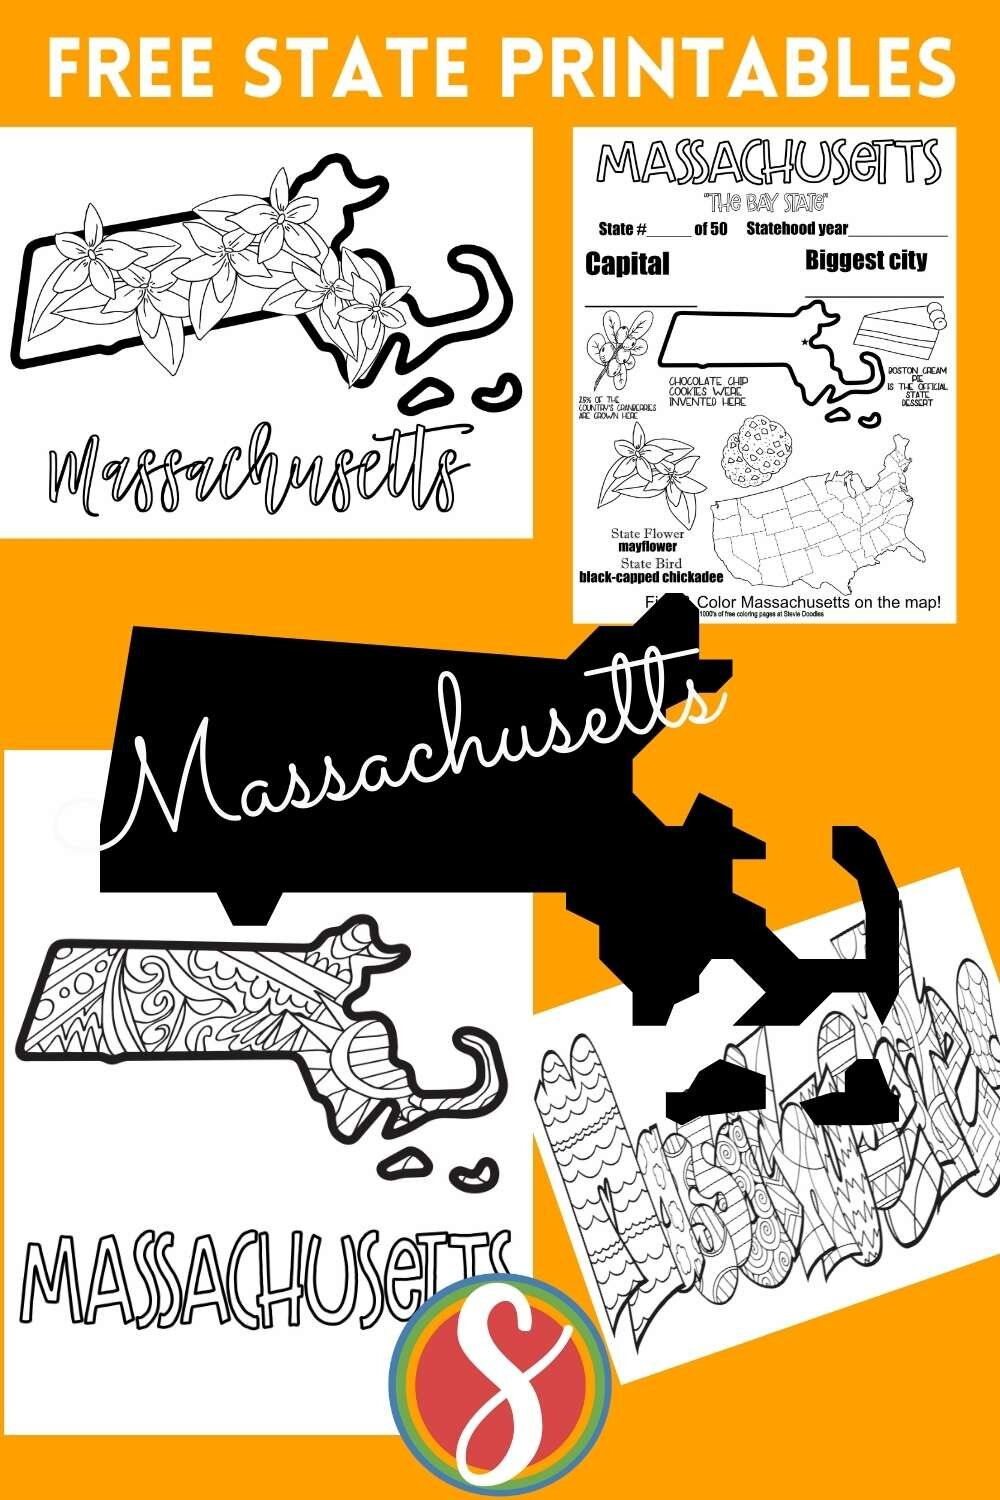 Stevie's collection of free U.S. states printable geography activity coloring pages - get Massachusetts + your state to print and color instantly today